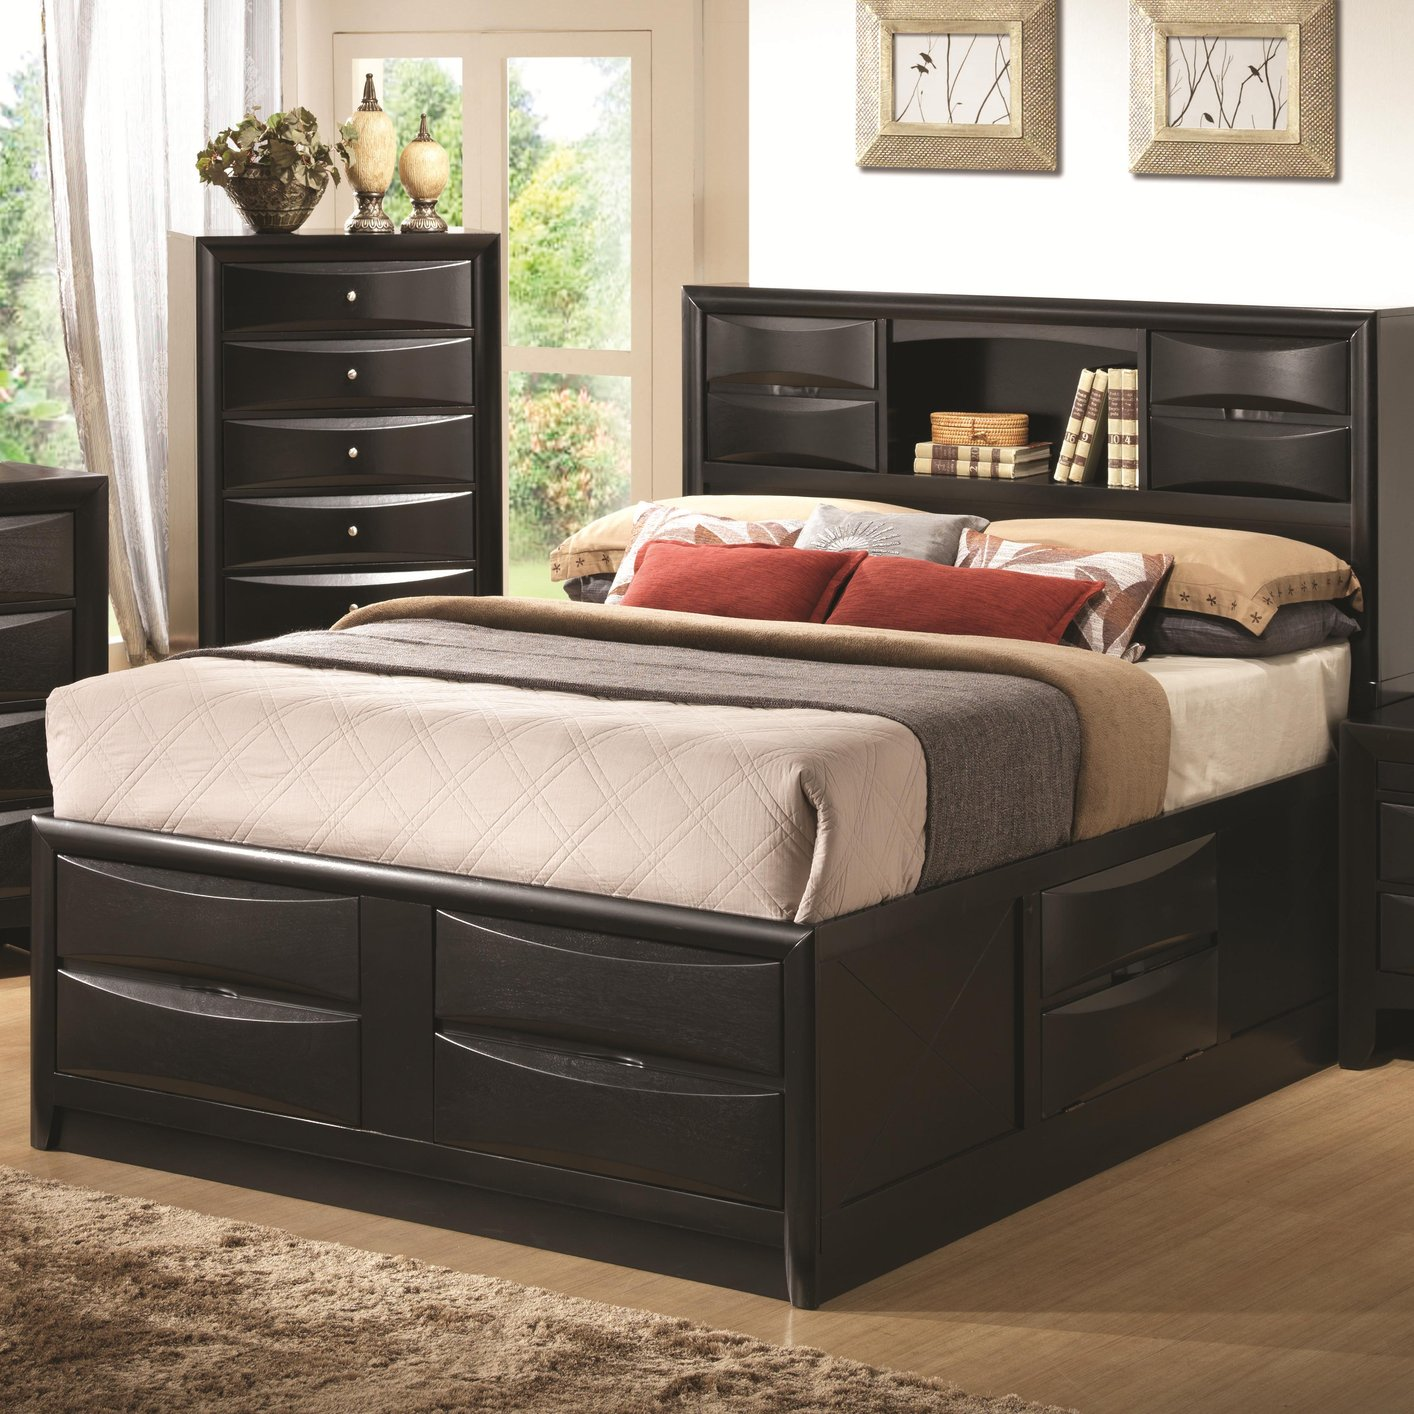 Coaster 202701Q Black Queen Size Wood Bed - Steal-A-Sofa Furniture ...